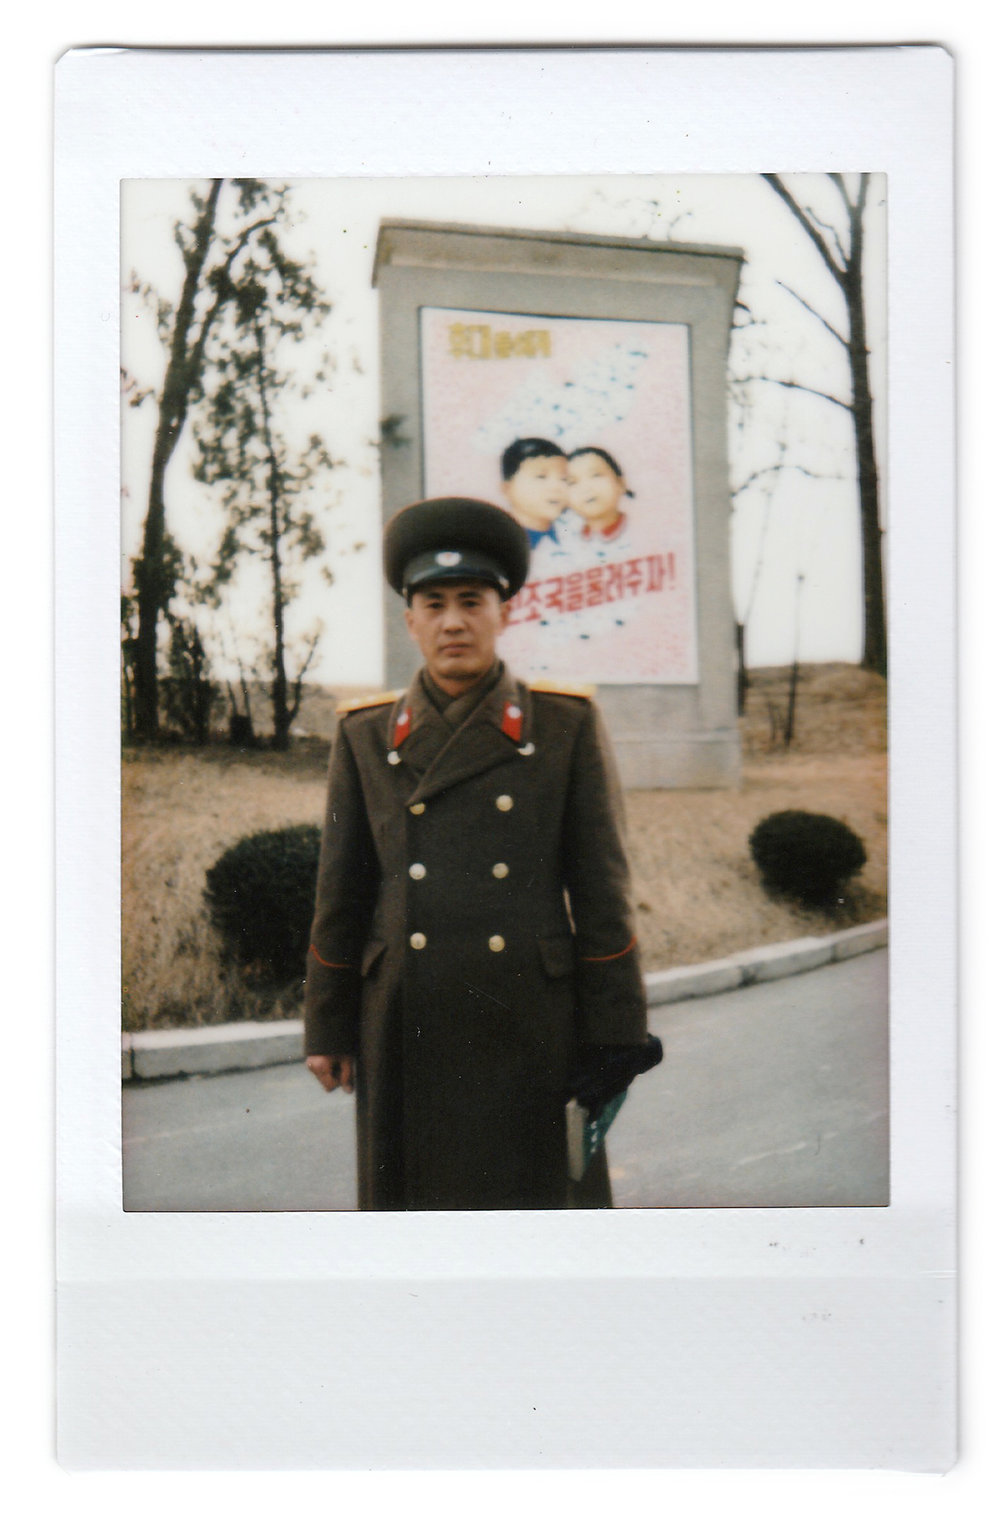 In this Feb. 22, 2016, photo made with an instant camera, North Korean People's Army Lt. Col. Nam Dong Ho poses for a portrait at the entrance to the Demilitarized Zone (DMZ) on the North Korean side. When asked what's important to them, North Koreans might talk about working hard, or doing well at sports, or having a big family, but leader Kim Jong Un is never far from the conversation. (AP Photo/Wong Maye-E)